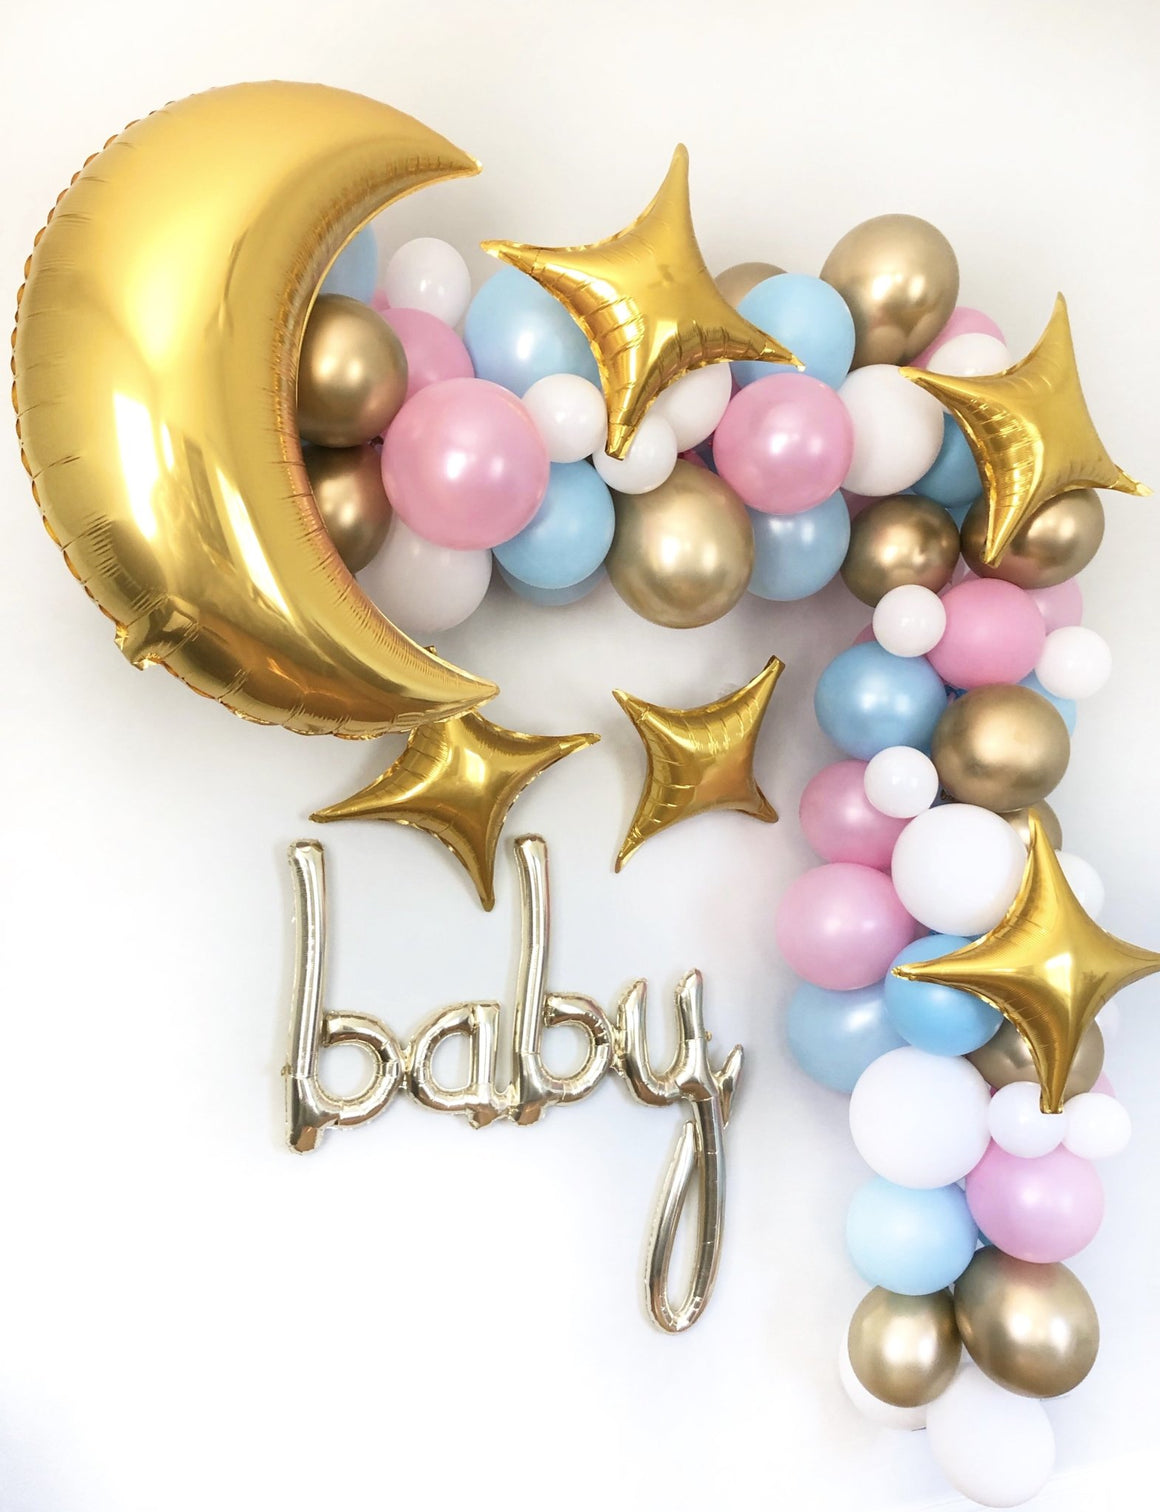 Twinkle Twinkle Little Star Balloon Garland Kit - Pink, Blue, Gold - Pretty Collected